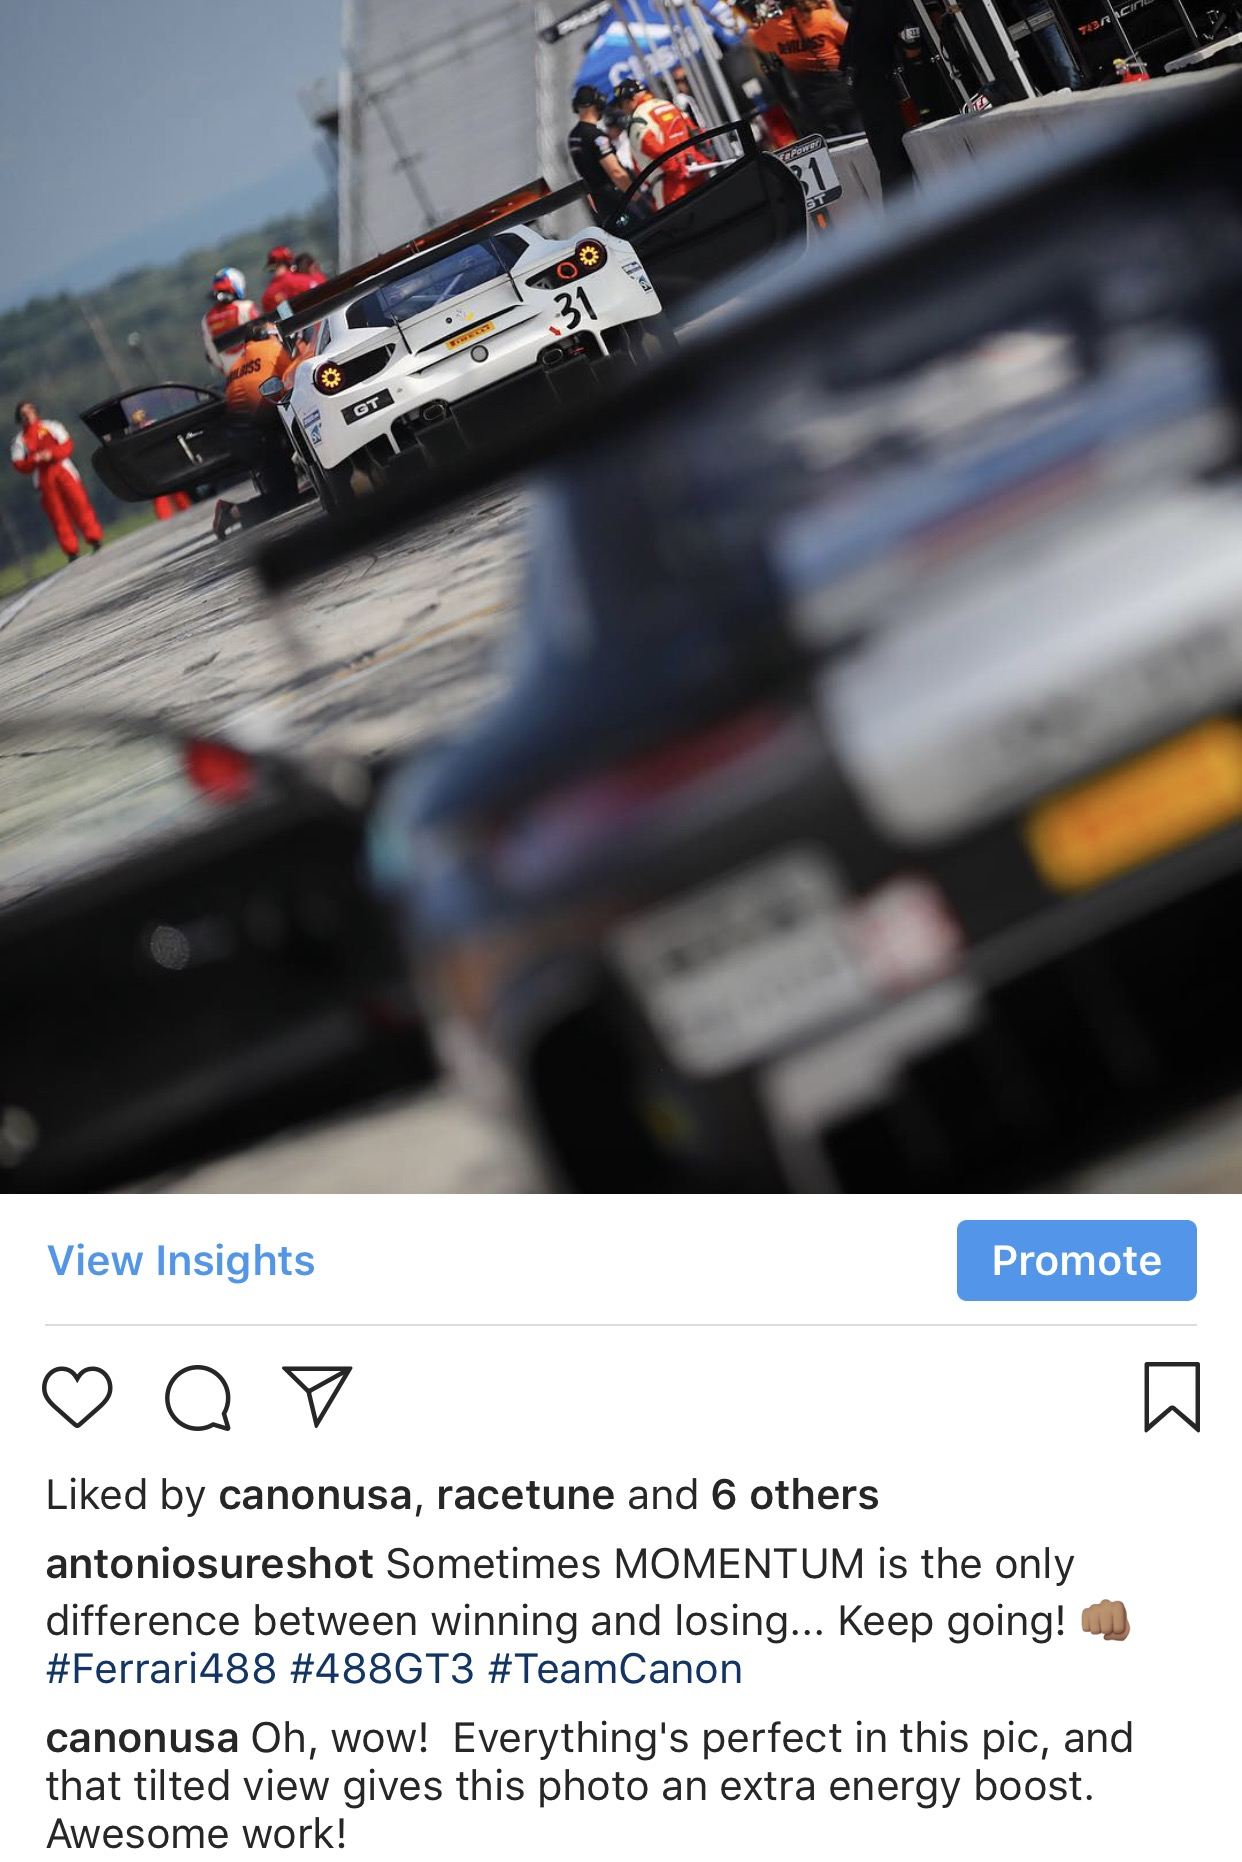 canonusa commented on antoniosureshot instagram.jpg